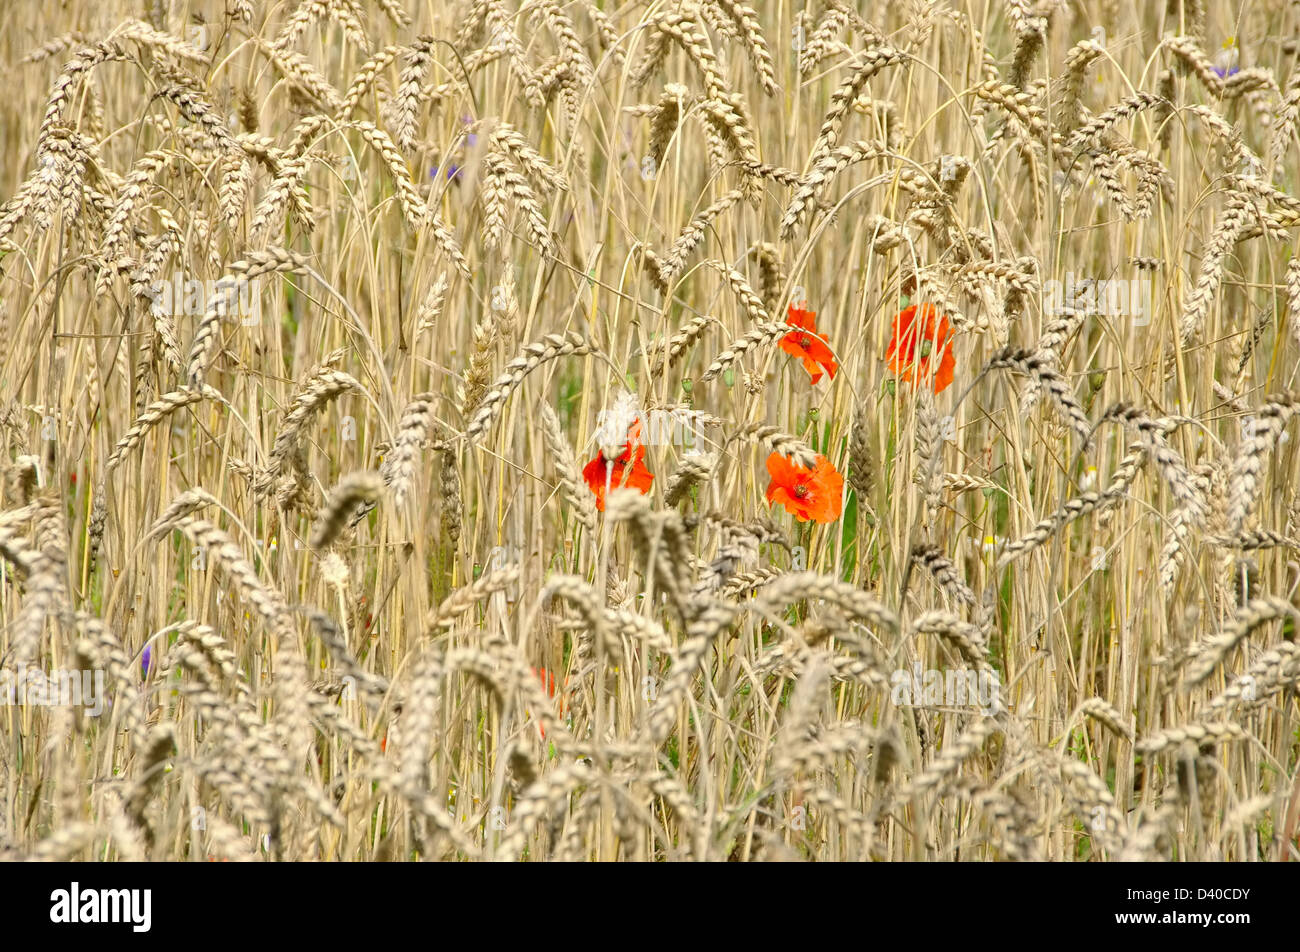 Klatschmohn im Feld - corn poppy in field 09 - Stock Image